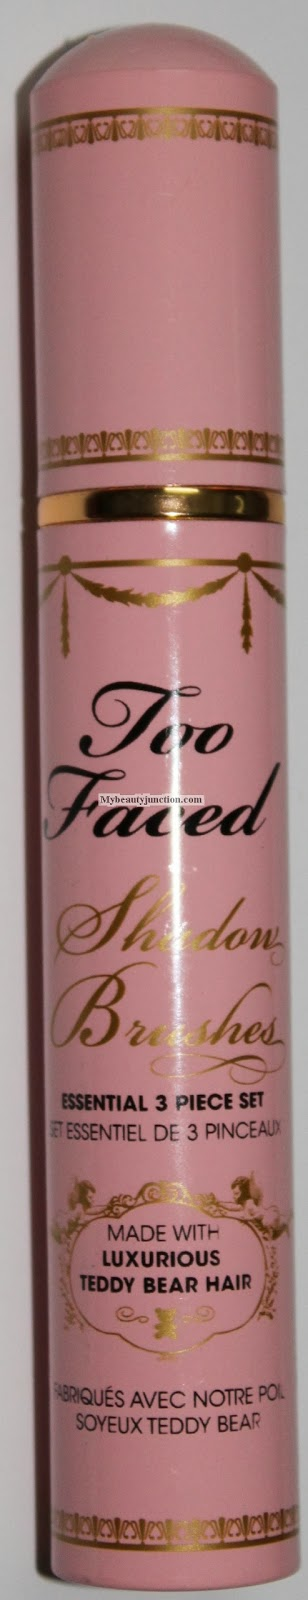 Review: Too Faced Shadow Brushes Essential 3-Piece Set